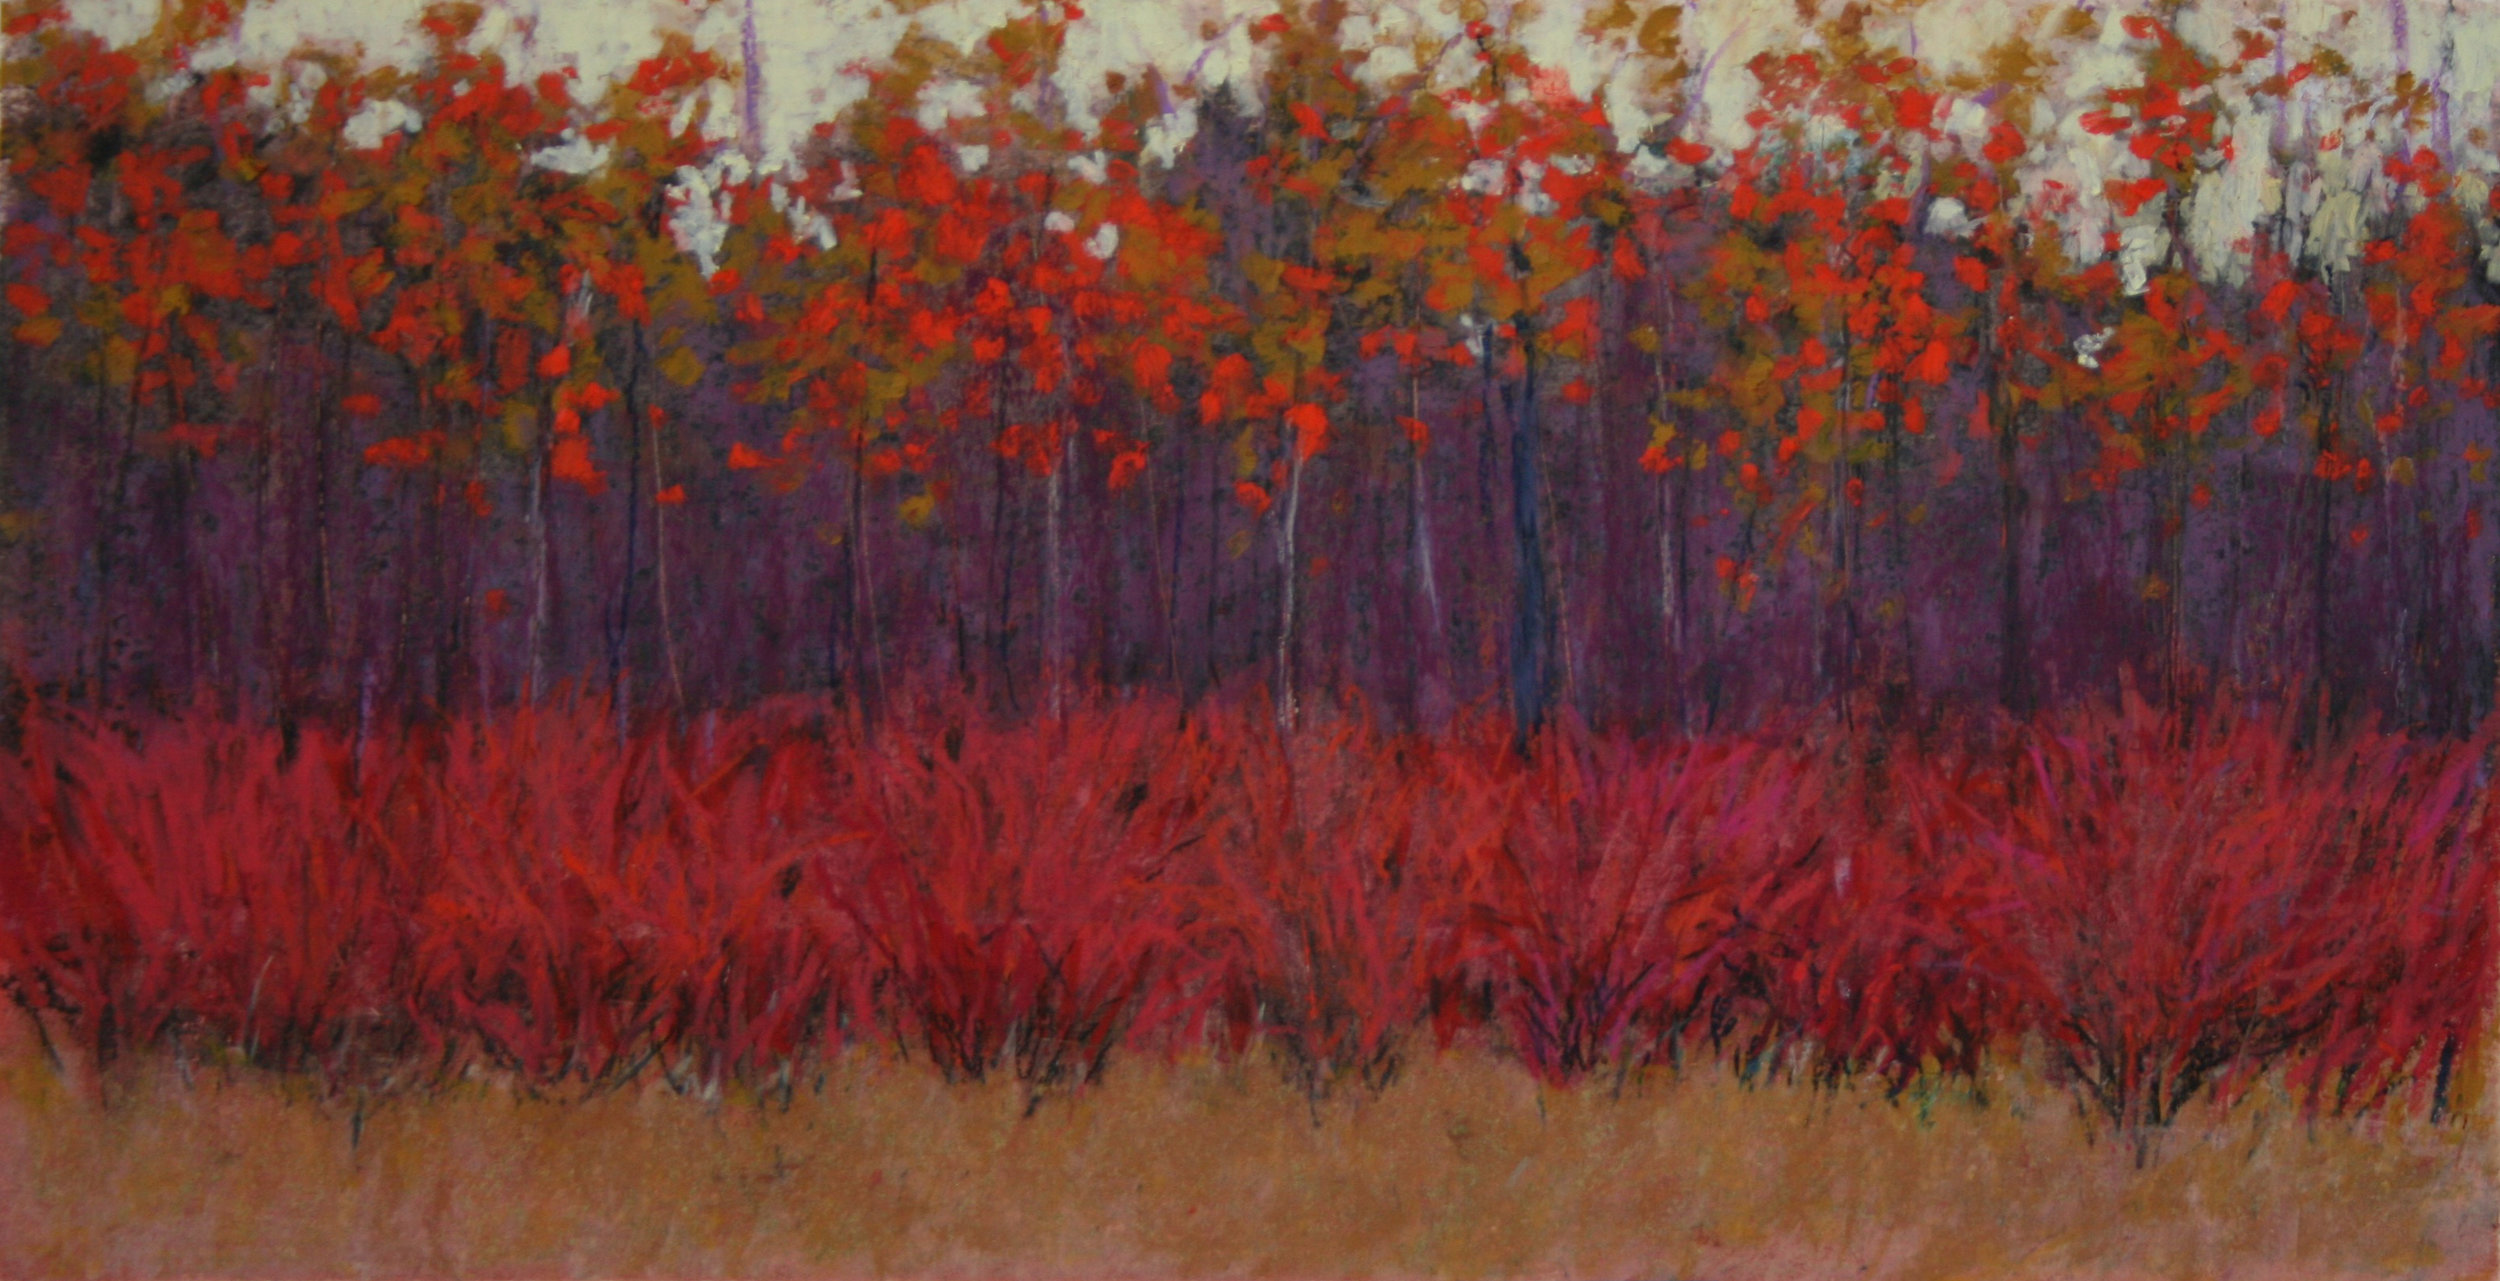 Red Bushes